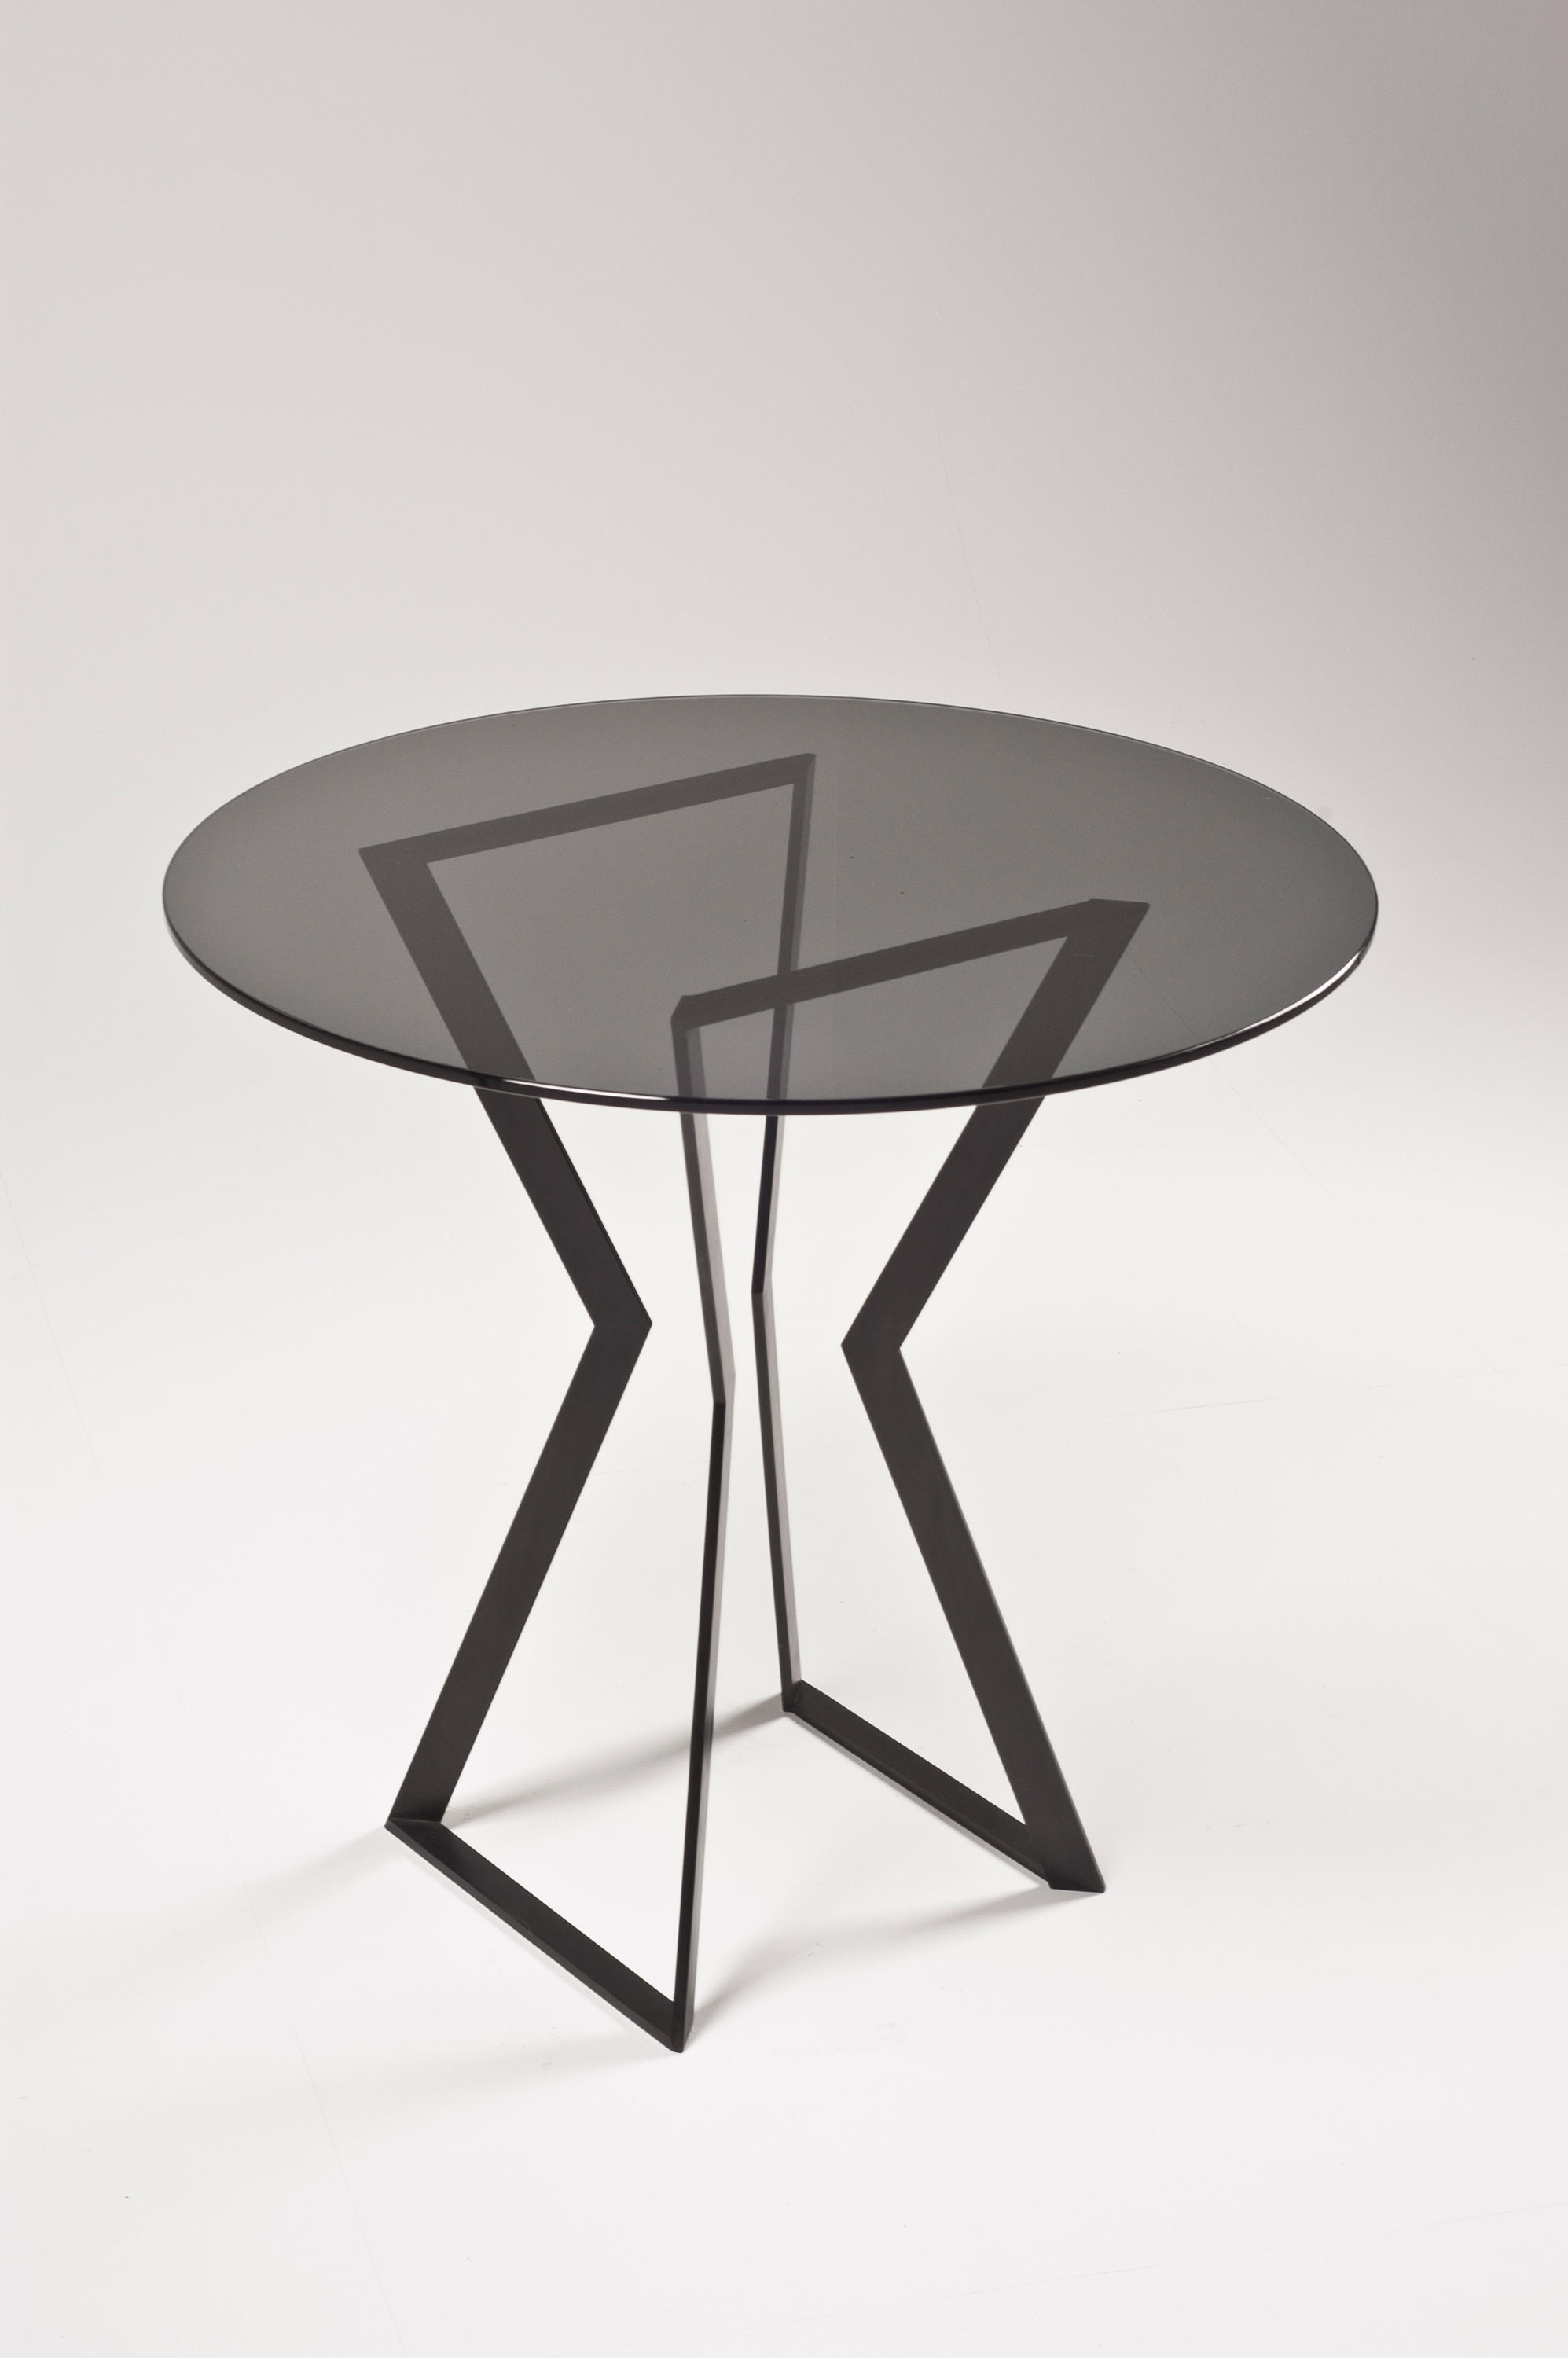 Table Noir Noir Dining Table - Dining Tables From Farrah Sit | Architonic